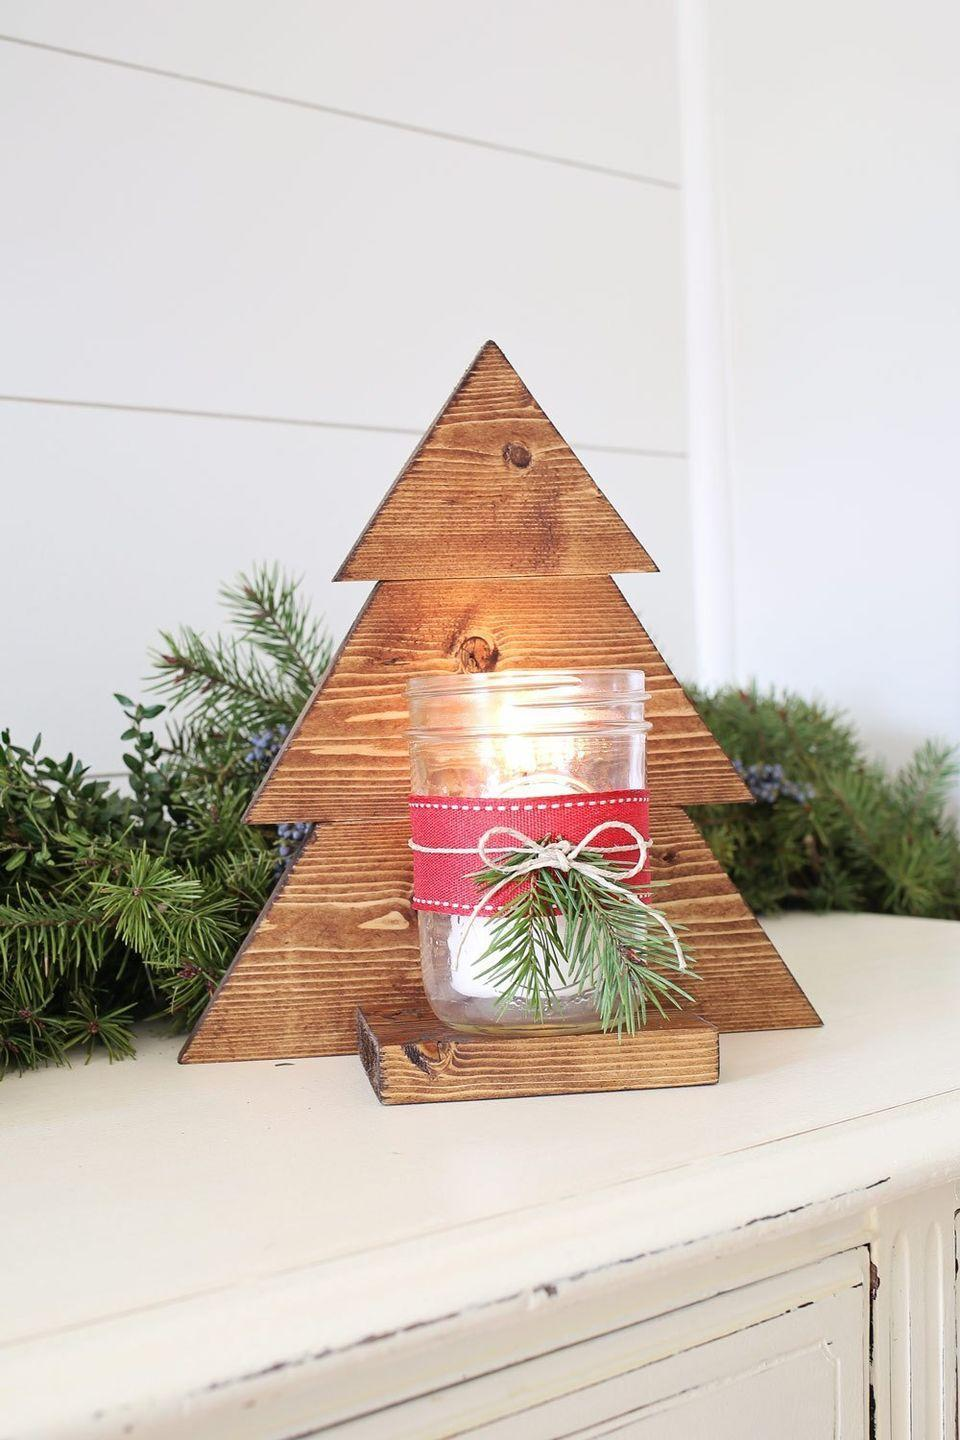 """<p>Whether you want to hang it on your wall or set it on your <a href=""""https://www.countryliving.com/home-design/decorating-ideas/g1571/holiday-mantels/"""" rel=""""nofollow noopener"""" target=""""_blank"""" data-ylk=""""slk:mantel"""" class=""""link rapid-noclick-resp"""">mantel</a>, this Christmas tree sconce will look great anywhere you put it. If you want, you can even make it into a beautiful <a href=""""https://www.countryliving.com/shopping/g4758/stocking-holders/"""" rel=""""nofollow noopener"""" target=""""_blank"""" data-ylk=""""slk:stocking holder"""" class=""""link rapid-noclick-resp"""">stocking holder</a>.</p><p><strong>Get the tutorial from <a href=""""https://angelamariemade.com/diy-wood-christmas-tree-mason-jar-sconce/"""" rel=""""nofollow noopener"""" target=""""_blank"""" data-ylk=""""slk:Angela Marie Made"""" class=""""link rapid-noclick-resp"""">Angela Marie Made</a>.</strong></p><p><strong><a class=""""link rapid-noclick-resp"""" href=""""https://www.amazon.com/Howard-RF3008-Restor-Finish-8-Ounce/dp/B003DNRH2A/?tag=syn-yahoo-20&ascsubtag=%5Bartid%7C10050.g.2132%5Bsrc%7Cyahoo-us"""" rel=""""nofollow noopener"""" target=""""_blank"""" data-ylk=""""slk:SHOP WOOD FINISH"""">SHOP WOOD FINISH</a><br></strong></p>"""